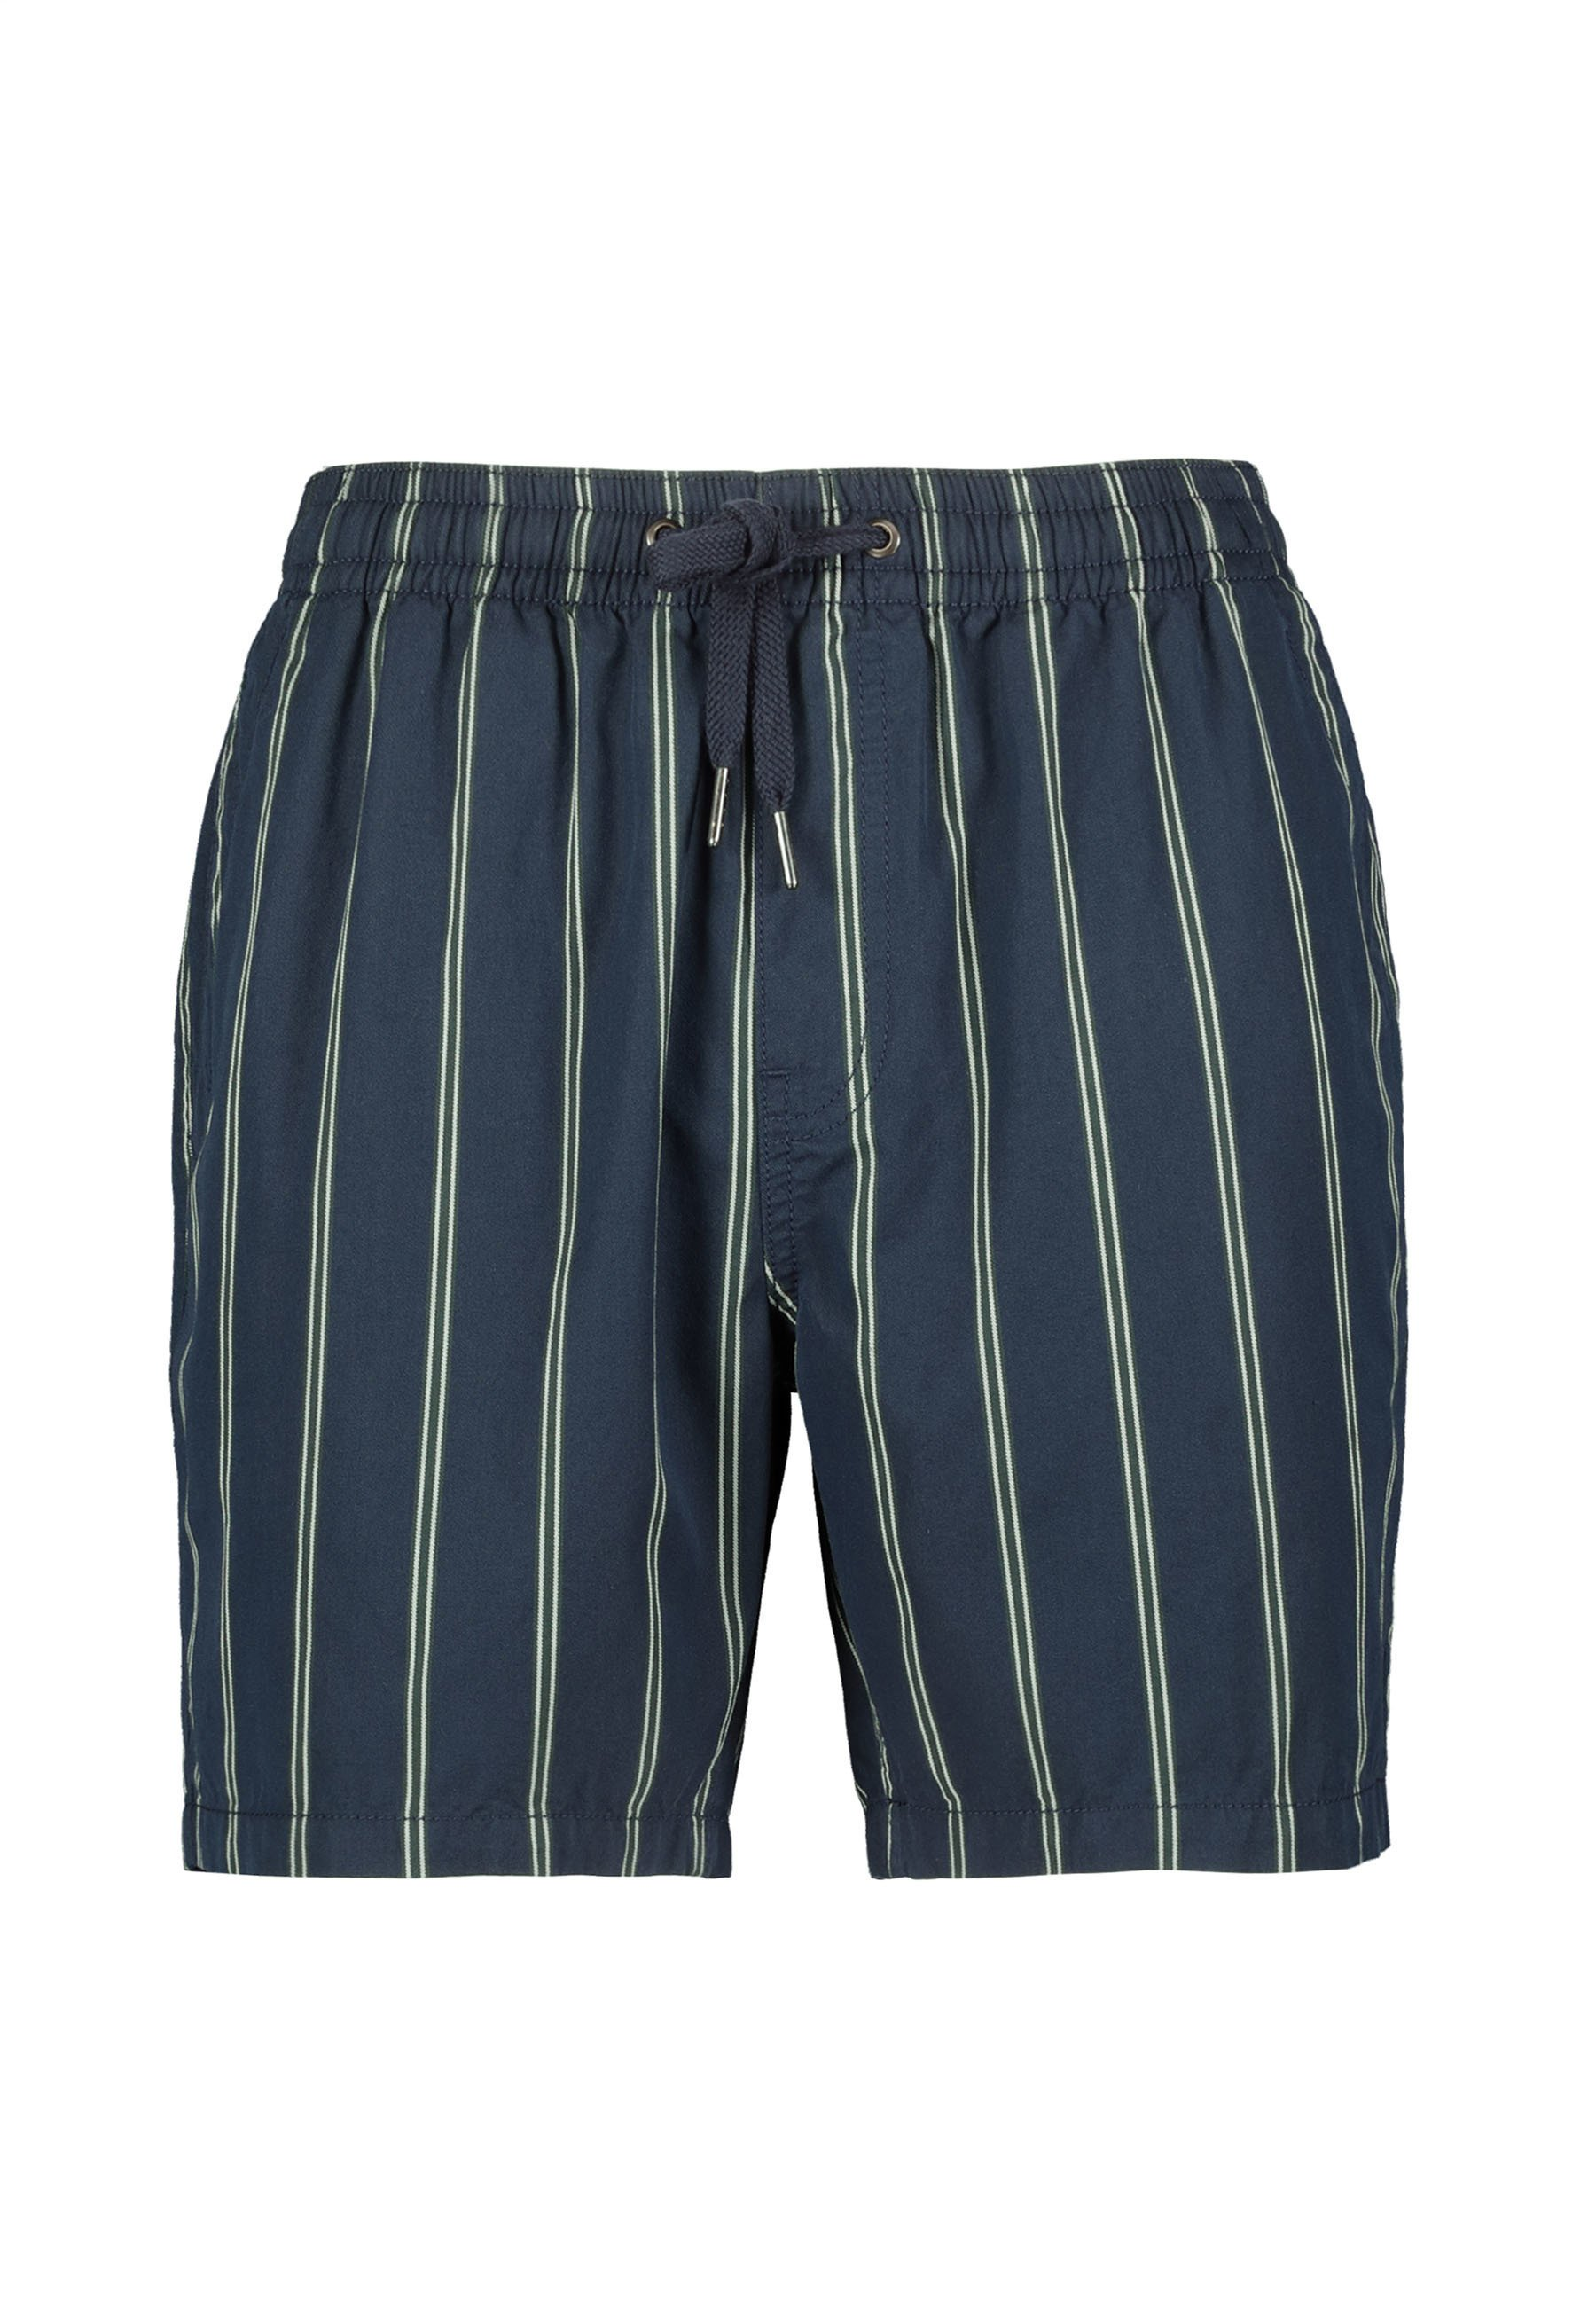 Next DOCK - Shorts - blue